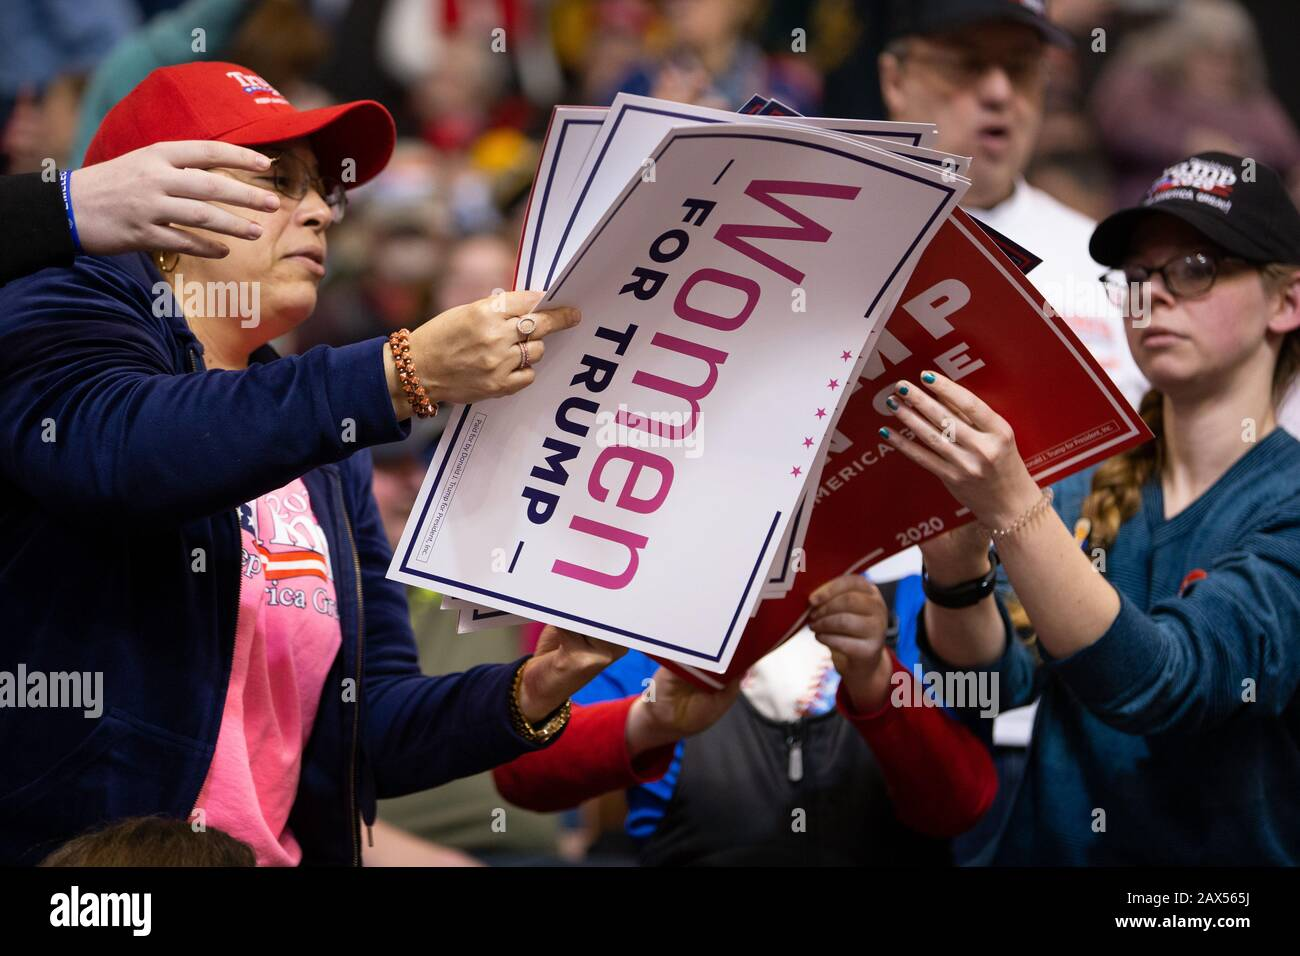 Manchester, United States. 10th Feb, 2020. Fans of United States President Donald Trump hand out signs before the start of a 2020 re-election campaign rally held by President Trump at the SNHU Arena in Manchester, New Hampshire on Monday, February 10, 2020. New Hampshire holds the first presidential primary in the nation on Tuesday. Photo by Matthew Healey/UPI Credit: UPI/Alamy Live News Stock Photo